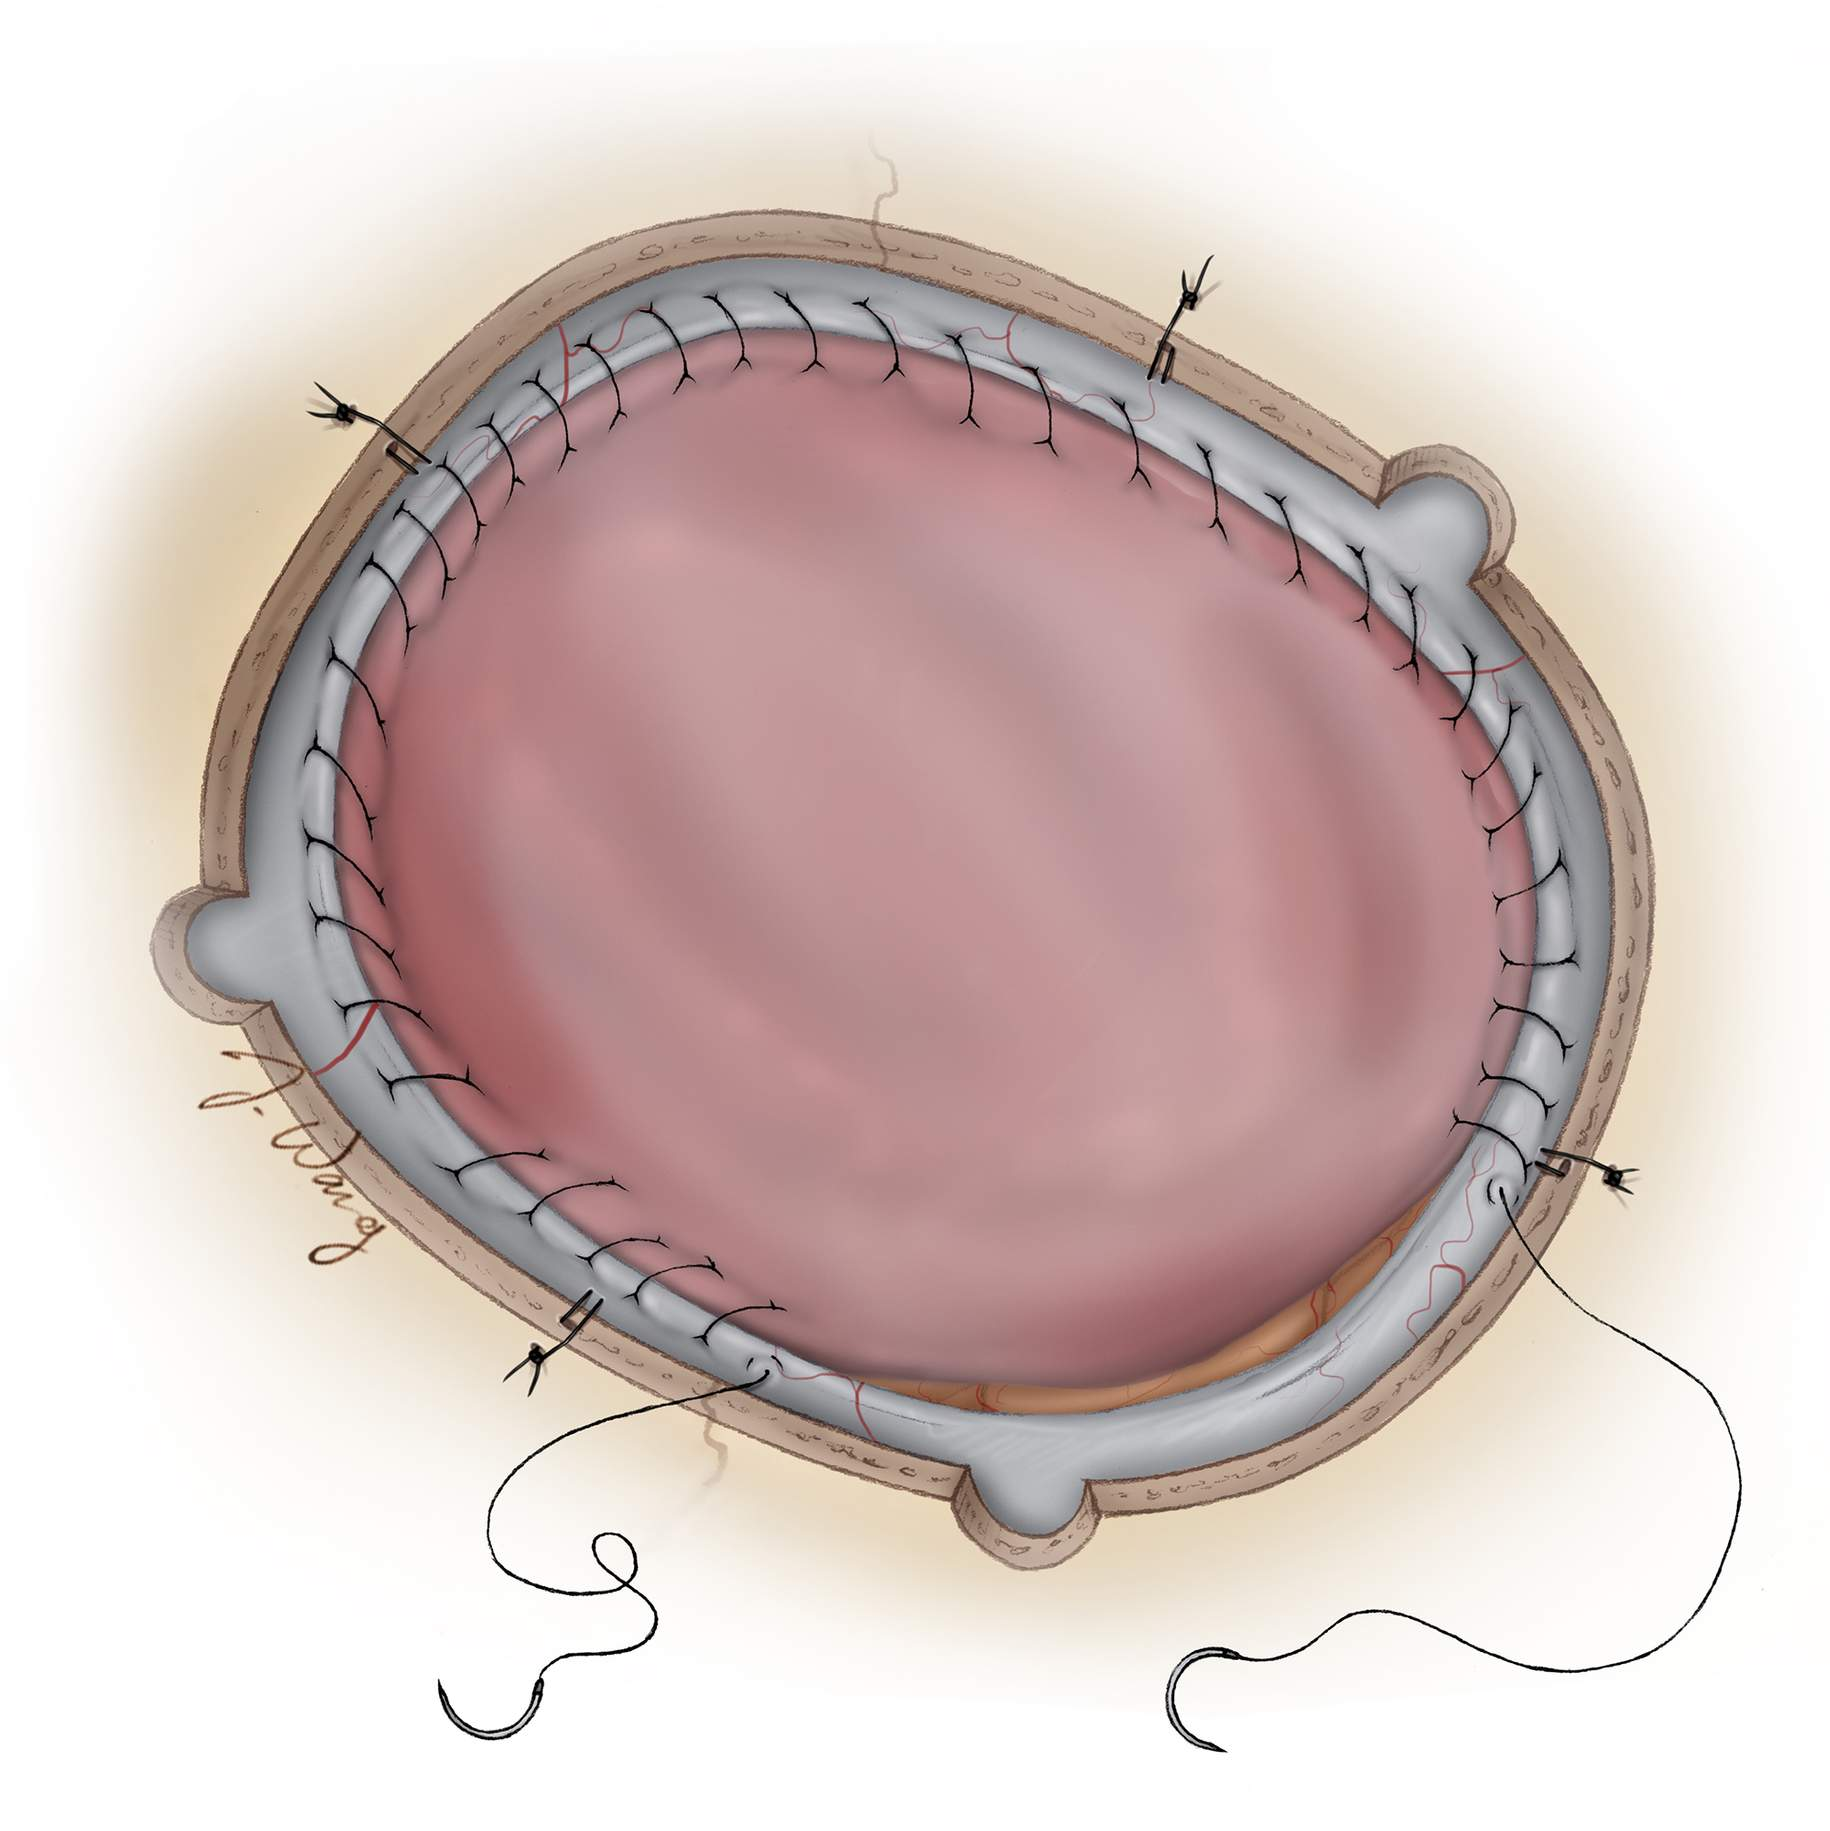 Figure 12: The dural defect is repaired using the previously prepared pericranial autograft. Epidural tack-up sutures should be used to constrain the epidural space and decrease postoperative epidural collections. The bone flap is inspected for any hyperostosis that should be excised. Finally, the bone flap is replaced and any large bony defect is covered with a prefabricated custom flap or titanium mesh.